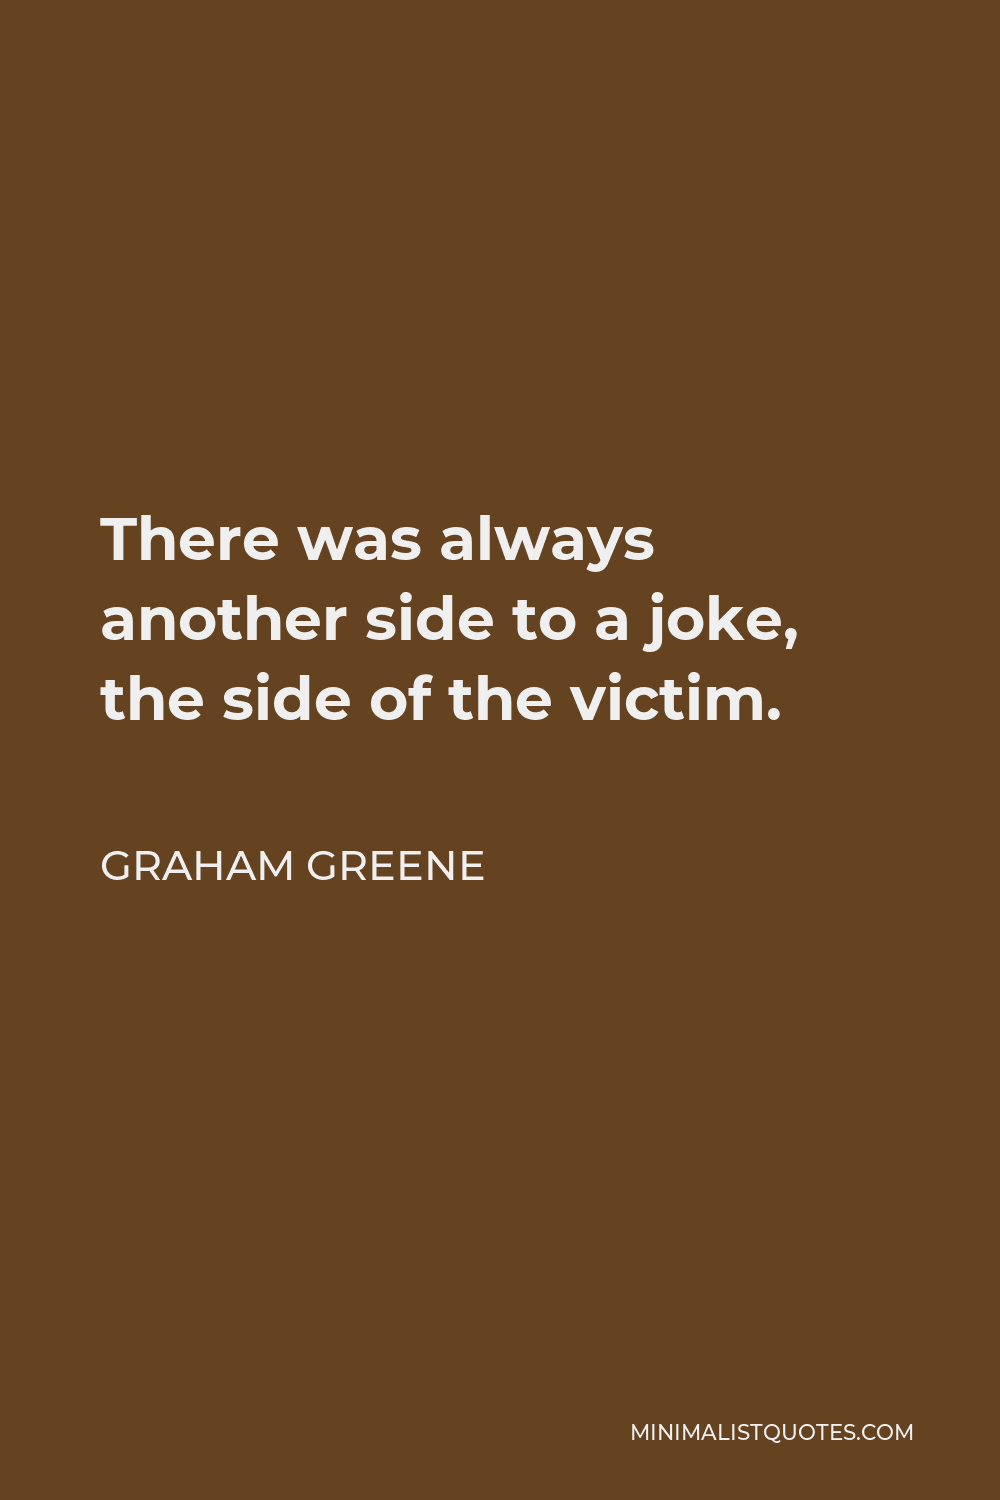 Graham Greene Quote - There was always another side to a joke, the side of the victim.